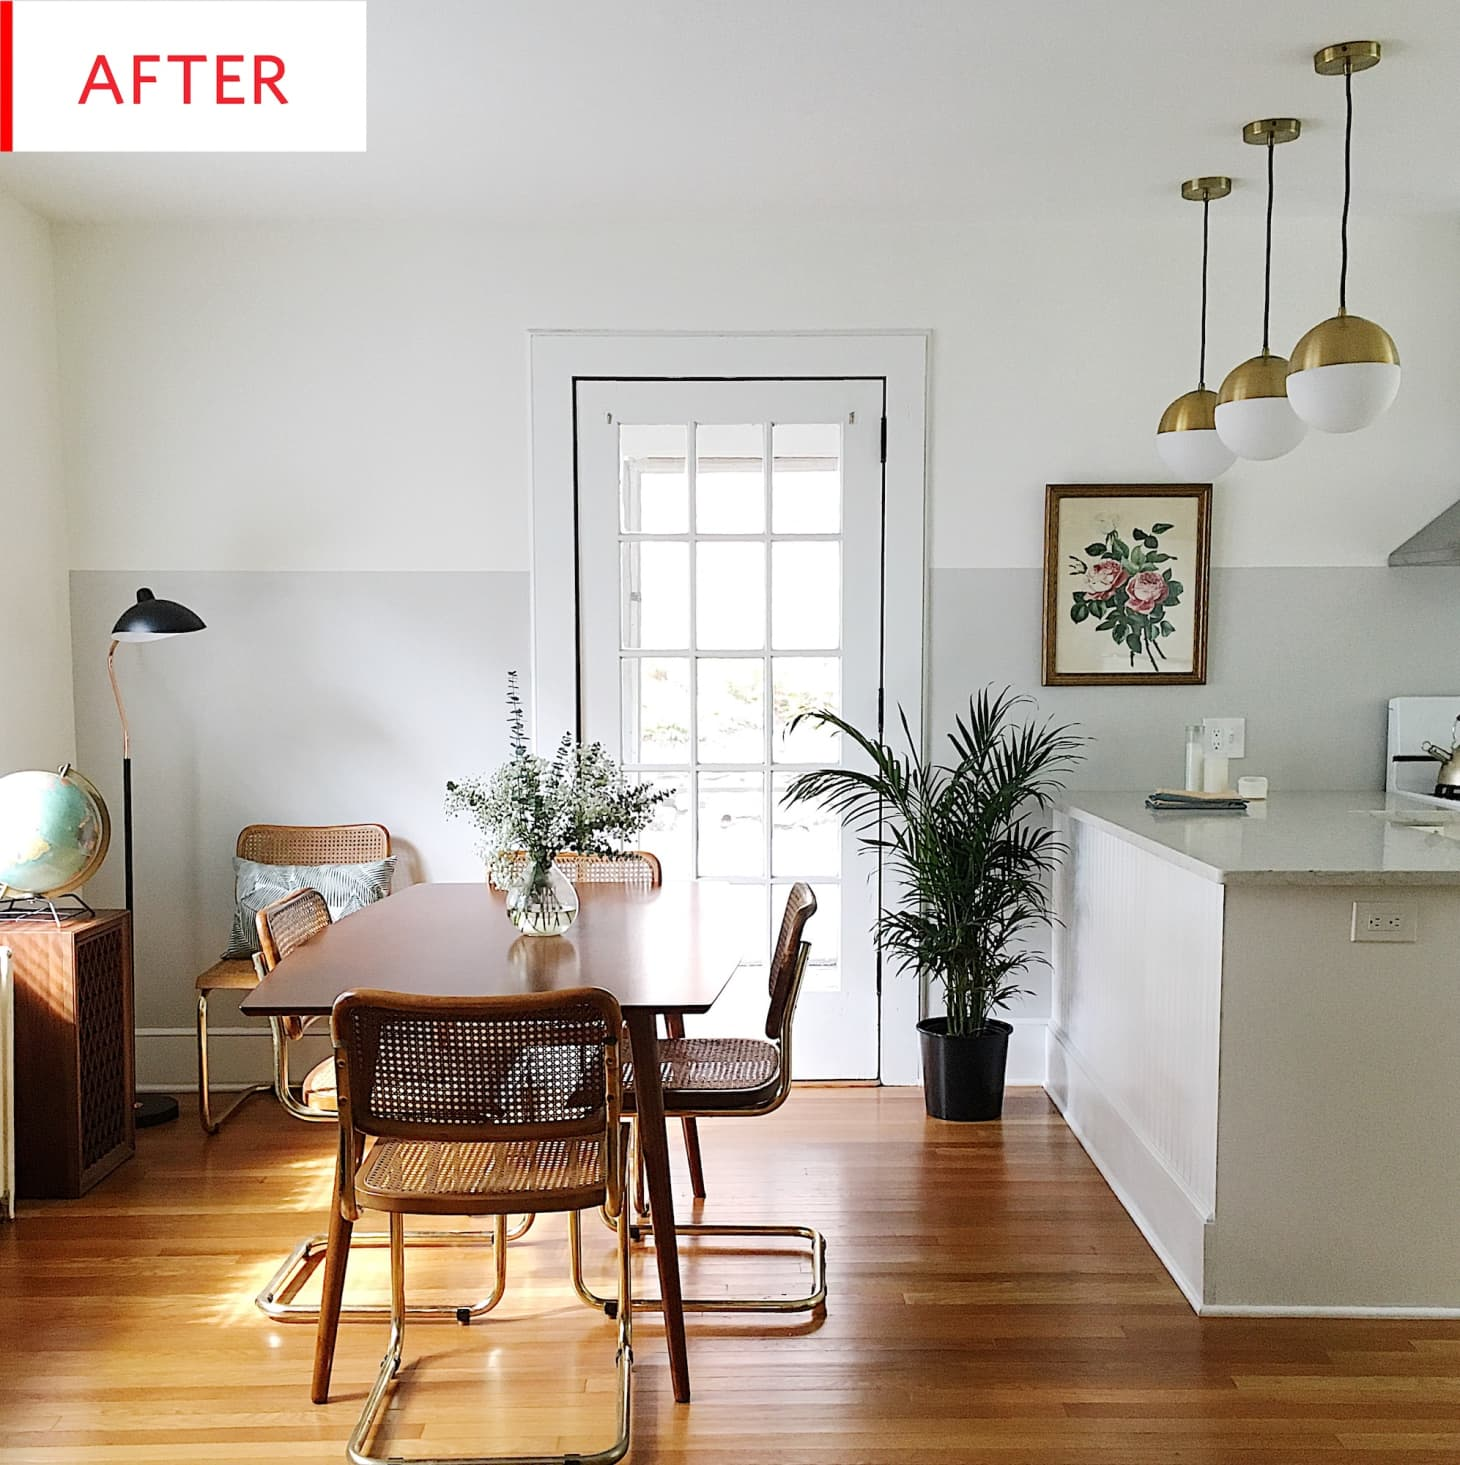 Kitchen and Dining Room Renovation with Historic Charm | Kitchn